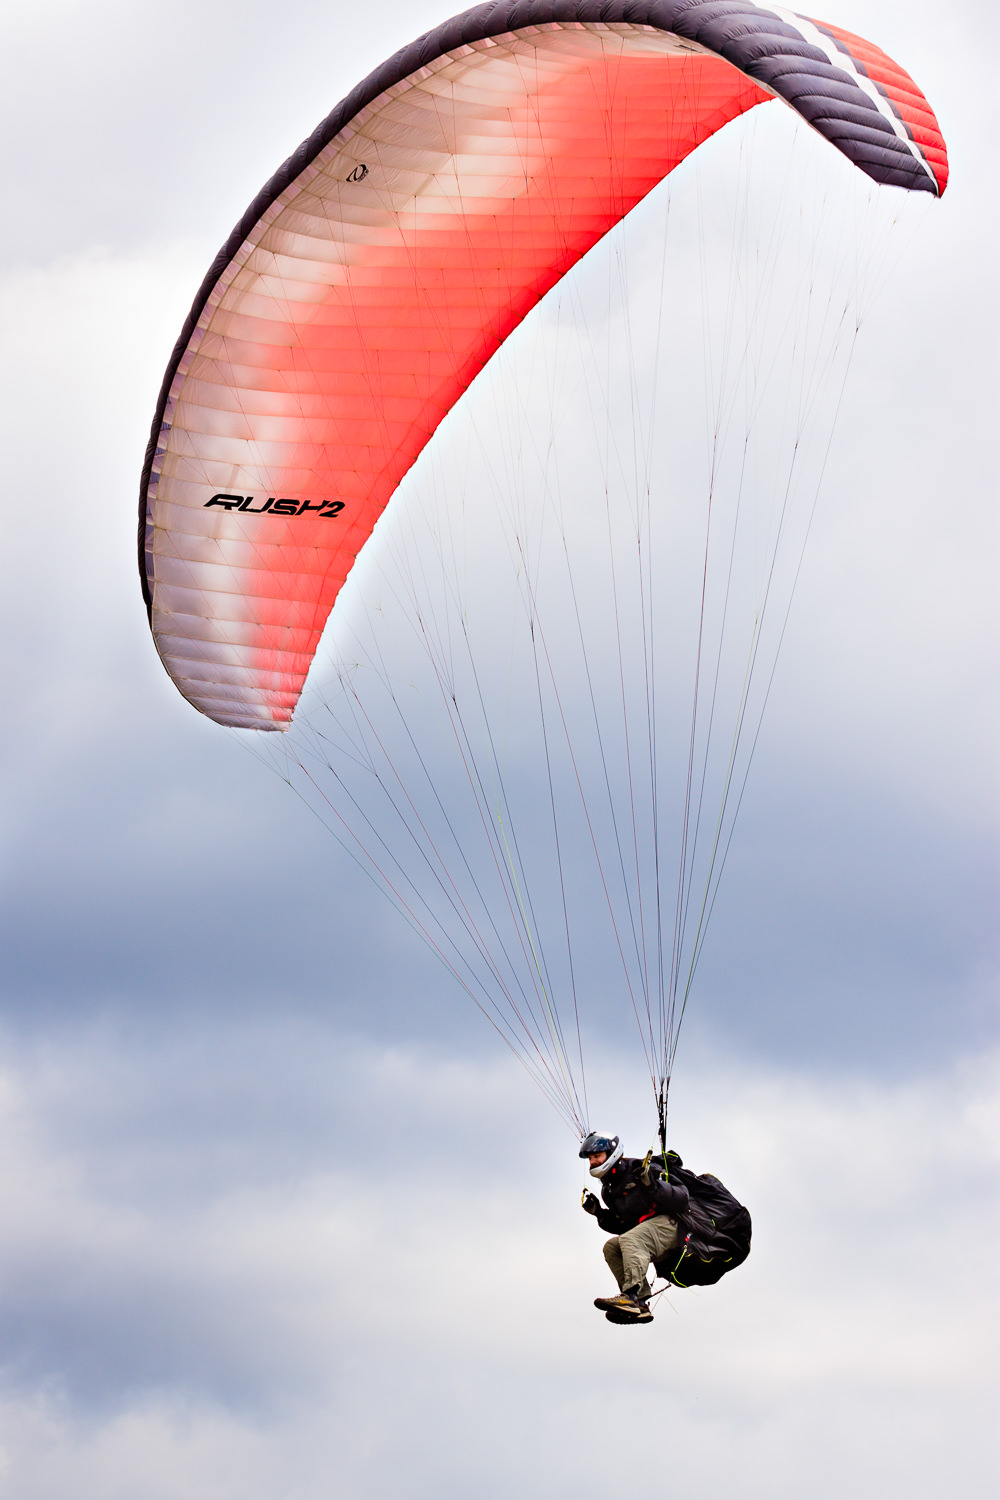 2011 Richard paragliding at a Missoula site.